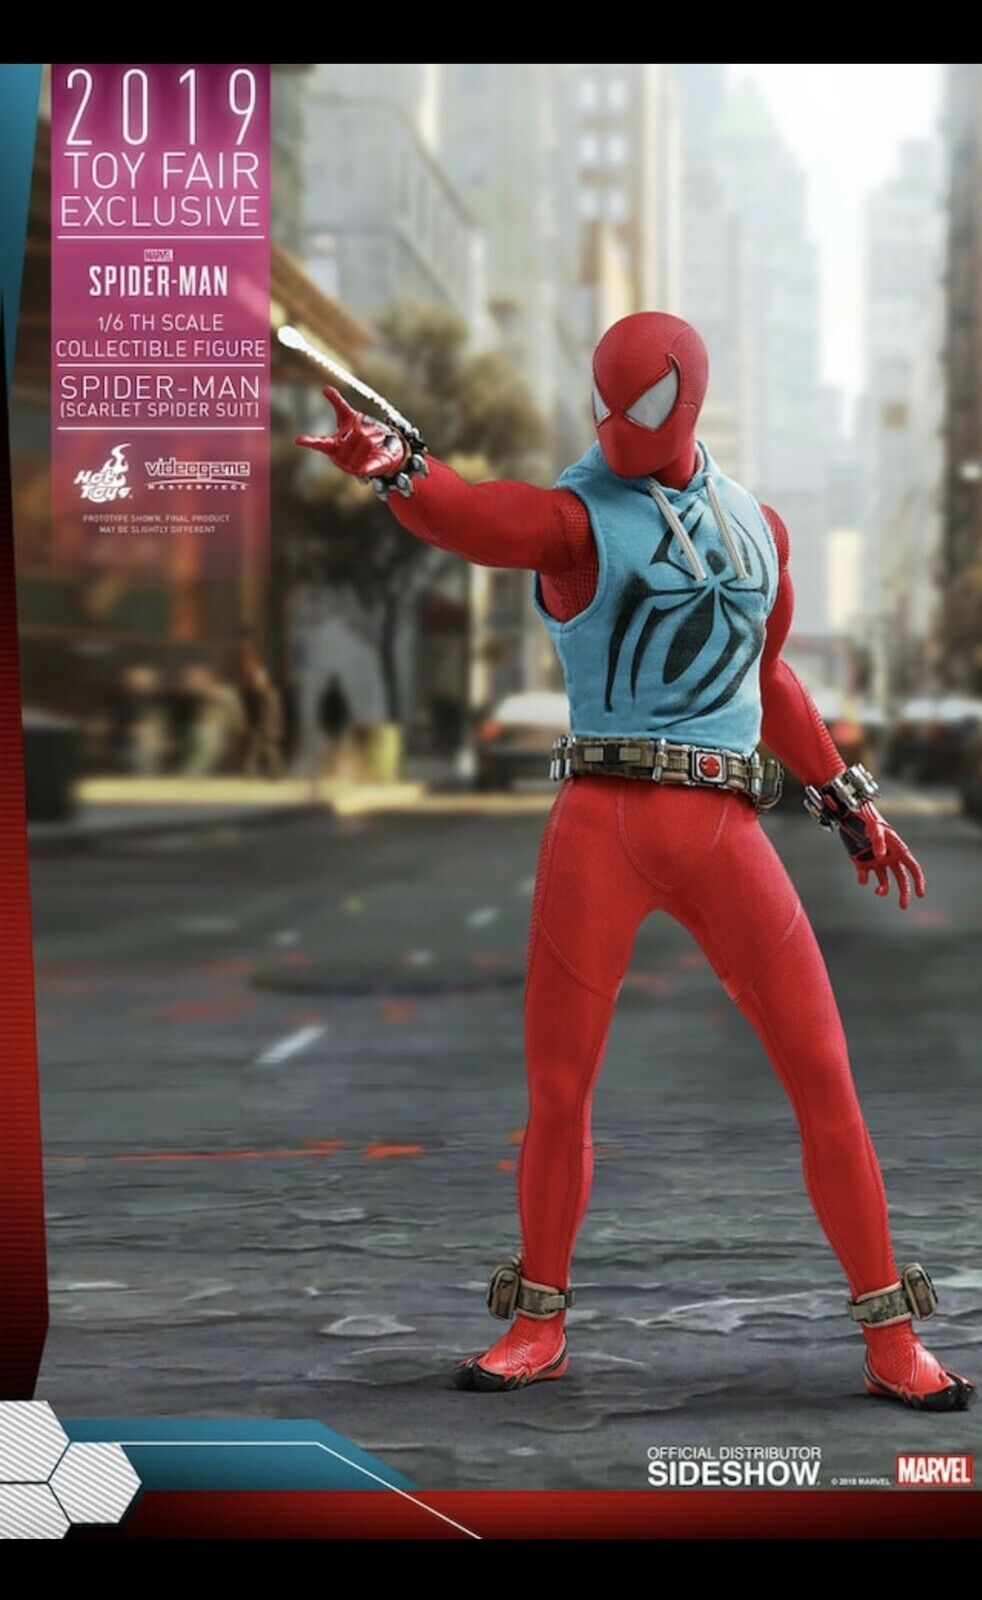 Spider-uomo (Sautolet Spider Spider Spider Suit) Sixth Scale cifra by Caliente giocattoli Preorder 5d5036